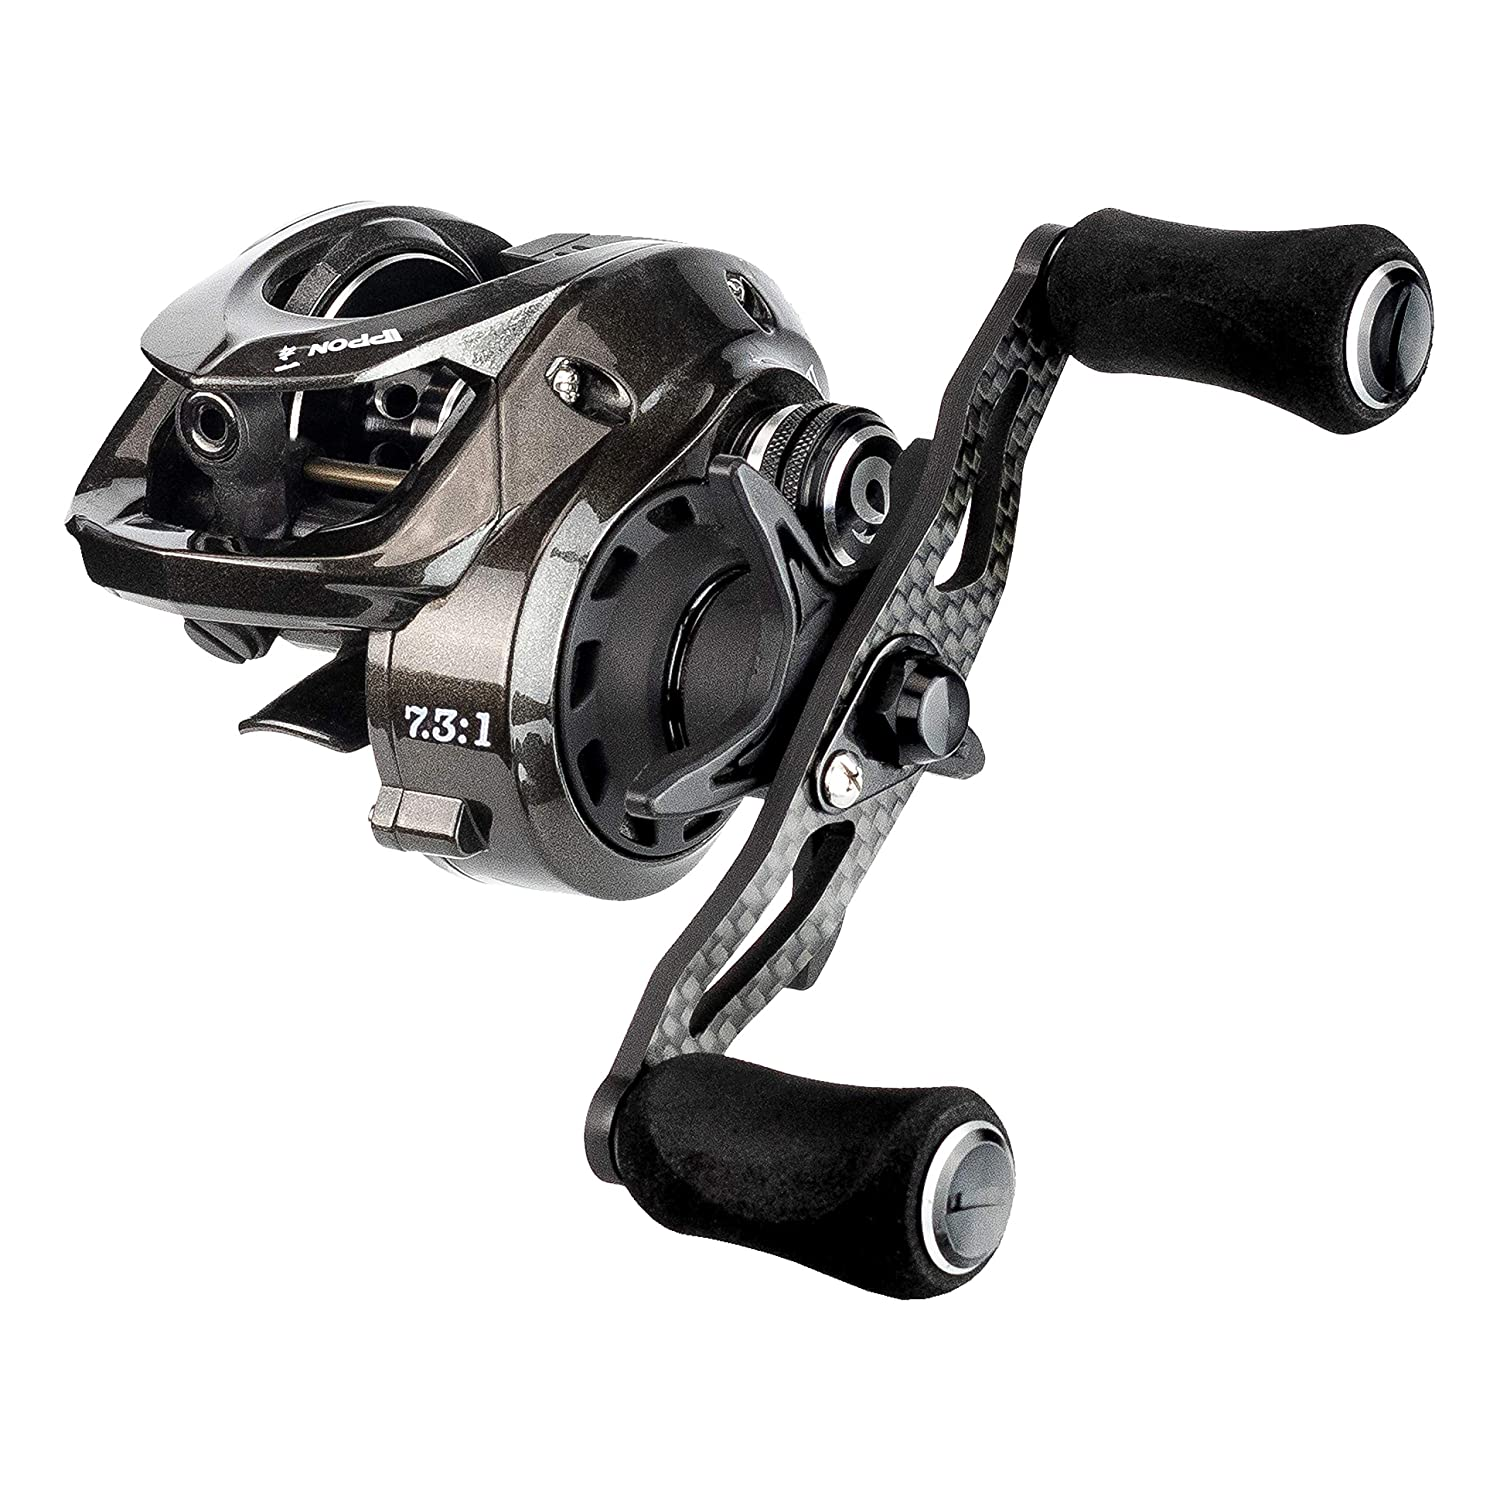 Enigma Fishing IPPON IPF100 Baitcasting Reels, Low Profile Baitcasters, Carbon Fiber Drag, Flipping – Pitching Magnetic Braking System Spool High-Speed Ceramic Bearings No Ordinary Reel